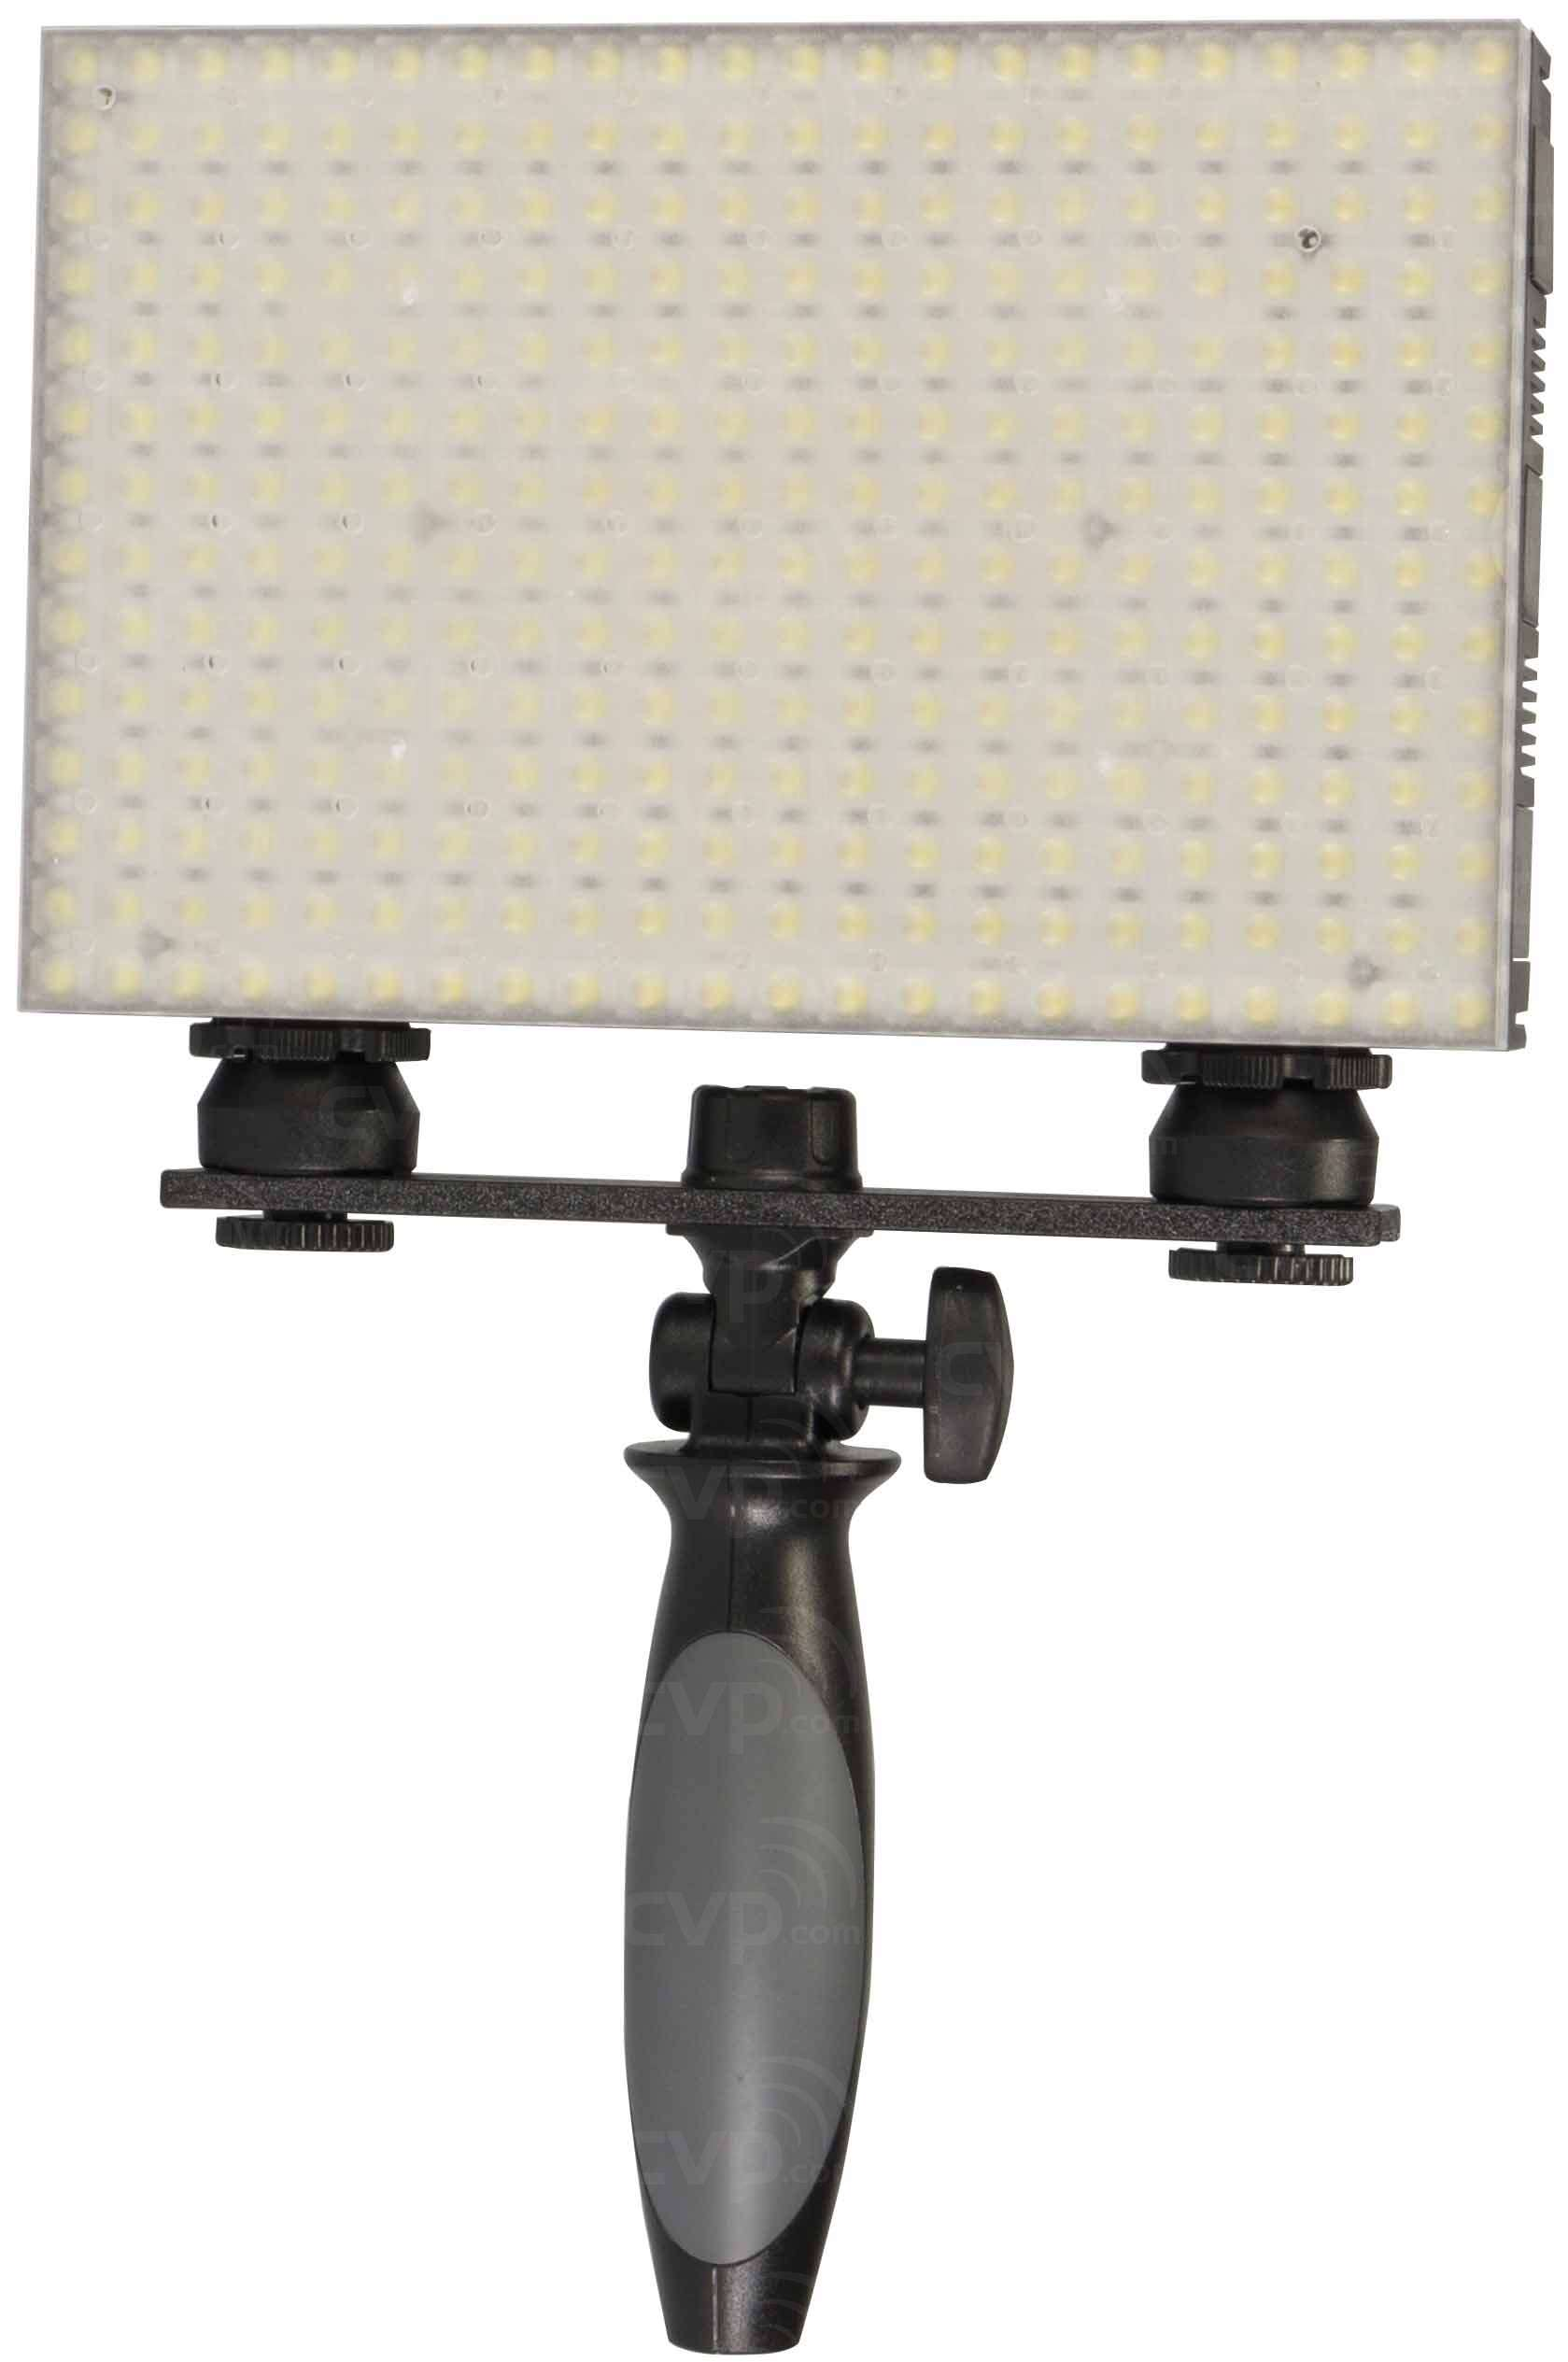 Datavision DVS-LEDGO-B308 (DVSLEDGOB308) LEDGO-B308 Daylight Modular Dimmable LED Camera Top